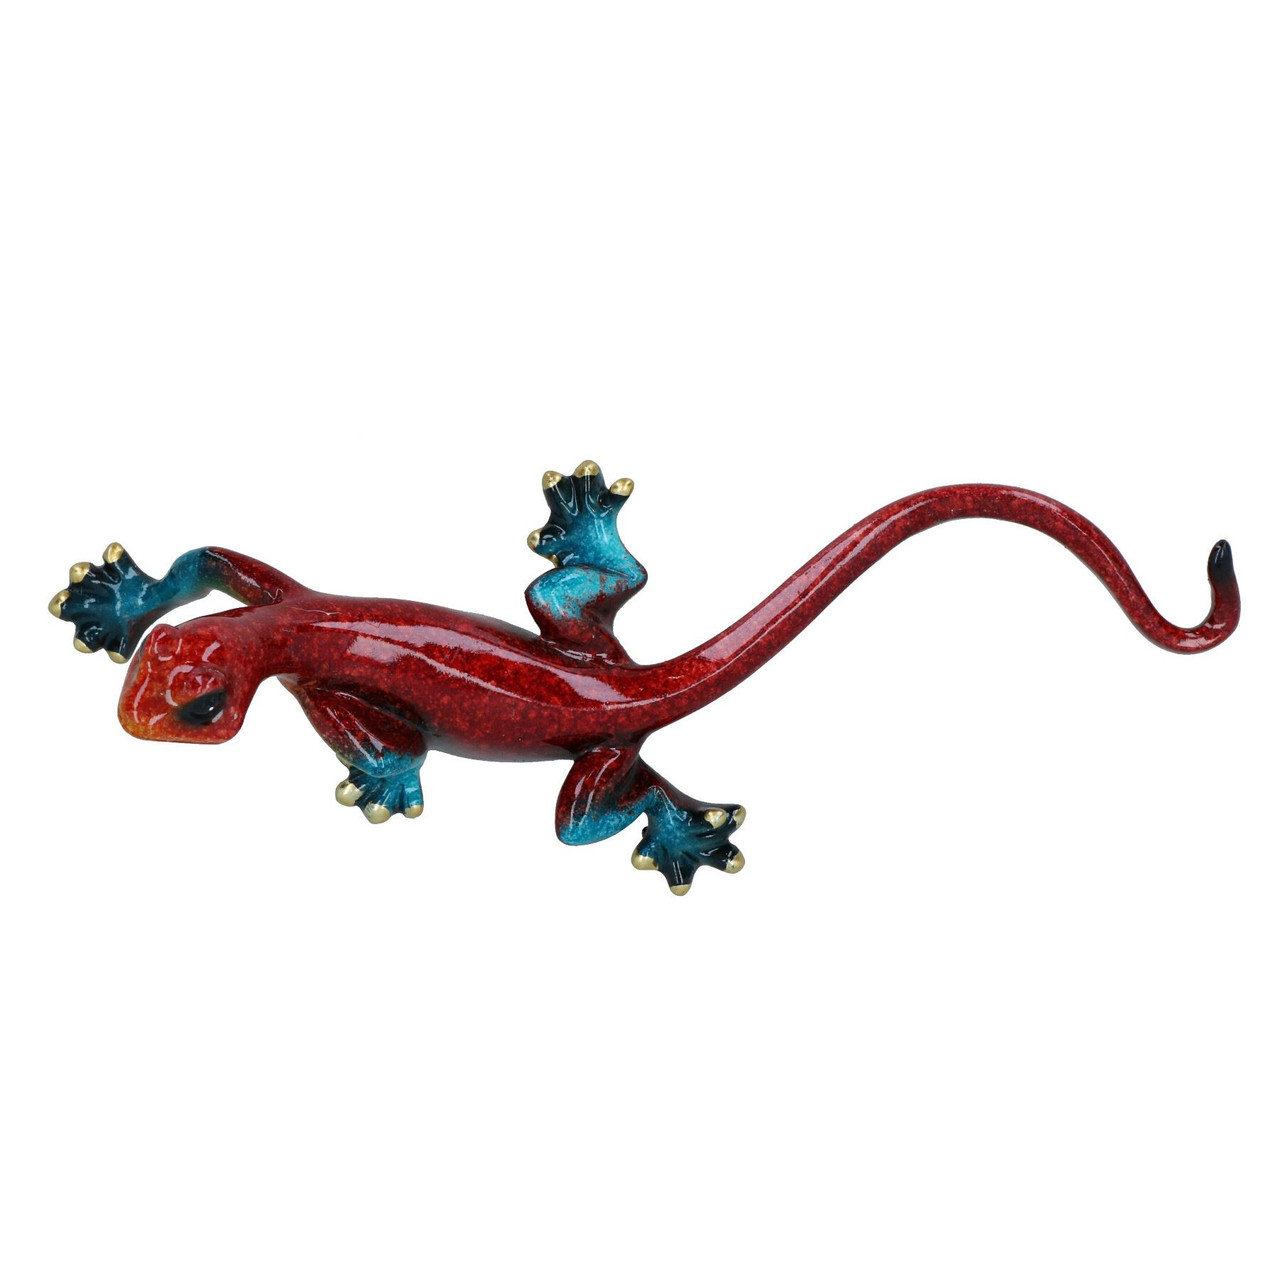 Red Speckled Gecko Lizard Resin Wall Shed Sculpture Decor Statue Small House